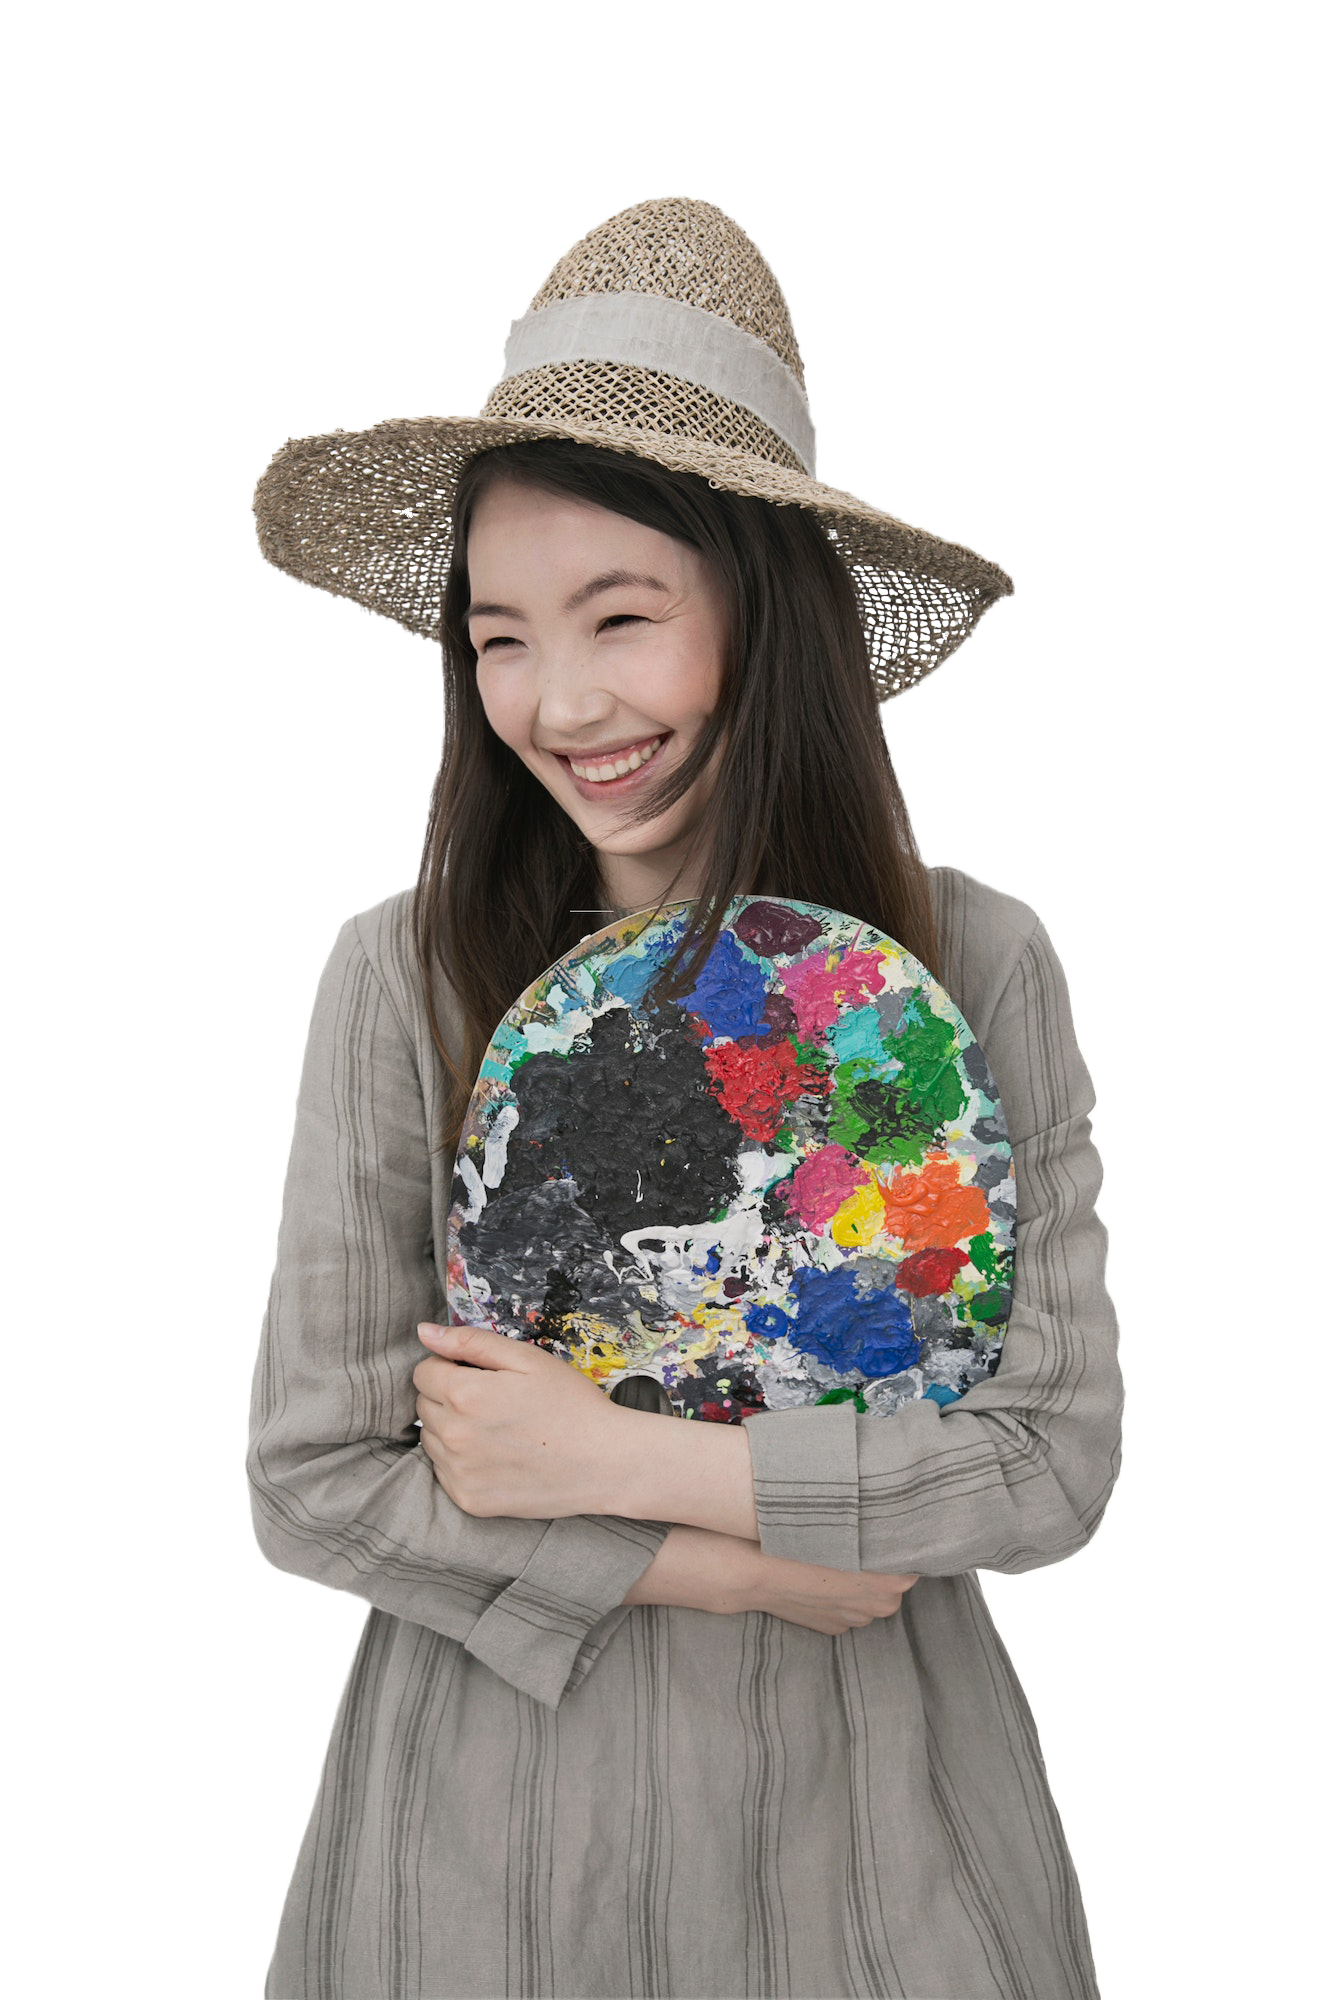 Beautiful Girl with Hat smiling with transparent background PNG